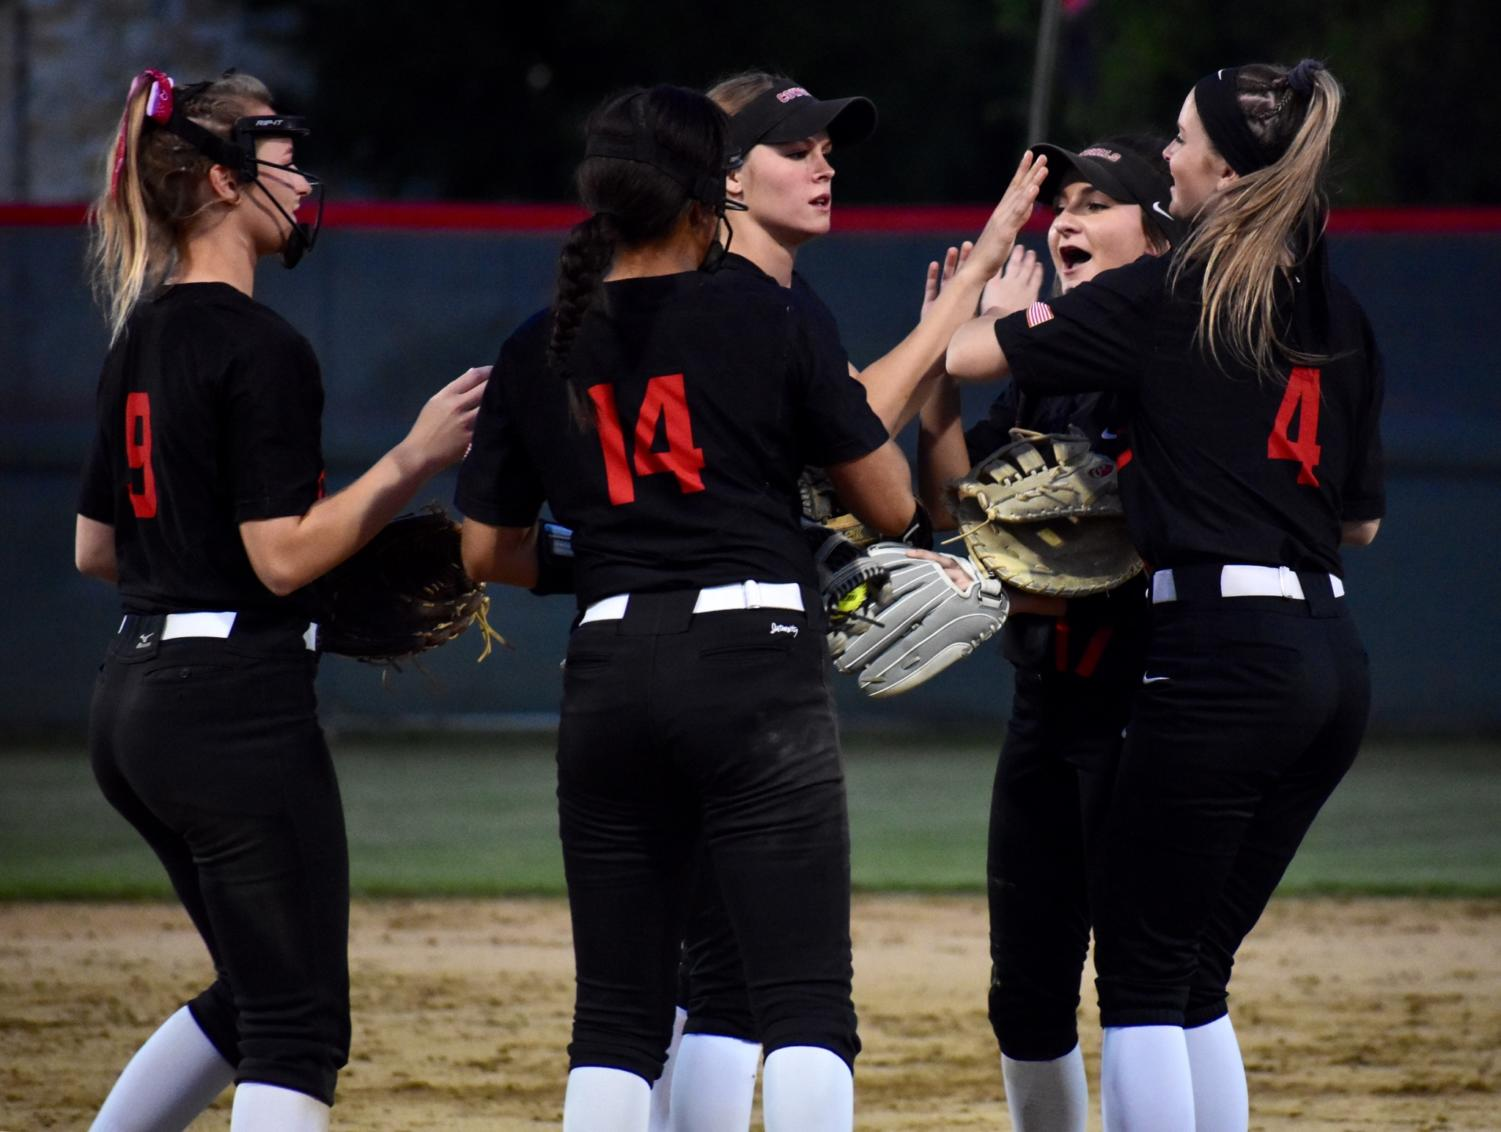 After+scoring+their+first+home+run%2C+Coppell+players+celebrate+at+the+game+against+Keller+at+the+Colleyville+Heritage+High+School+on+Friday.+The+Cowgirls+lost%2C+5-2%2C+as+their+season+ended+in+the+first+round+of+playoffs.